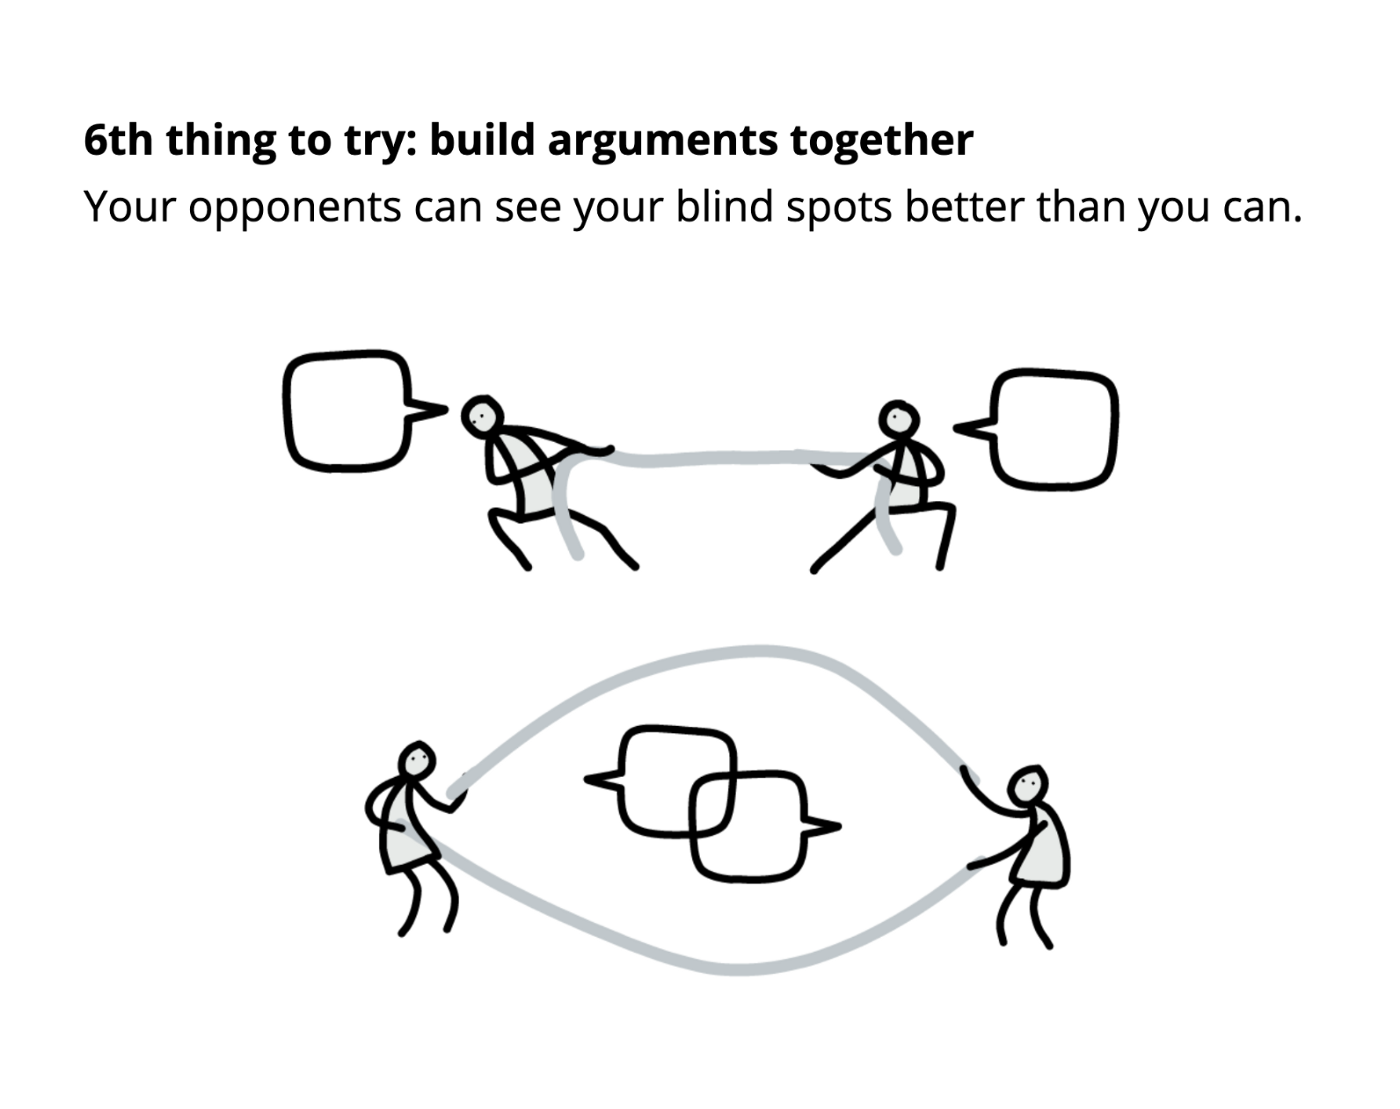 6th thing to try: build arguments together